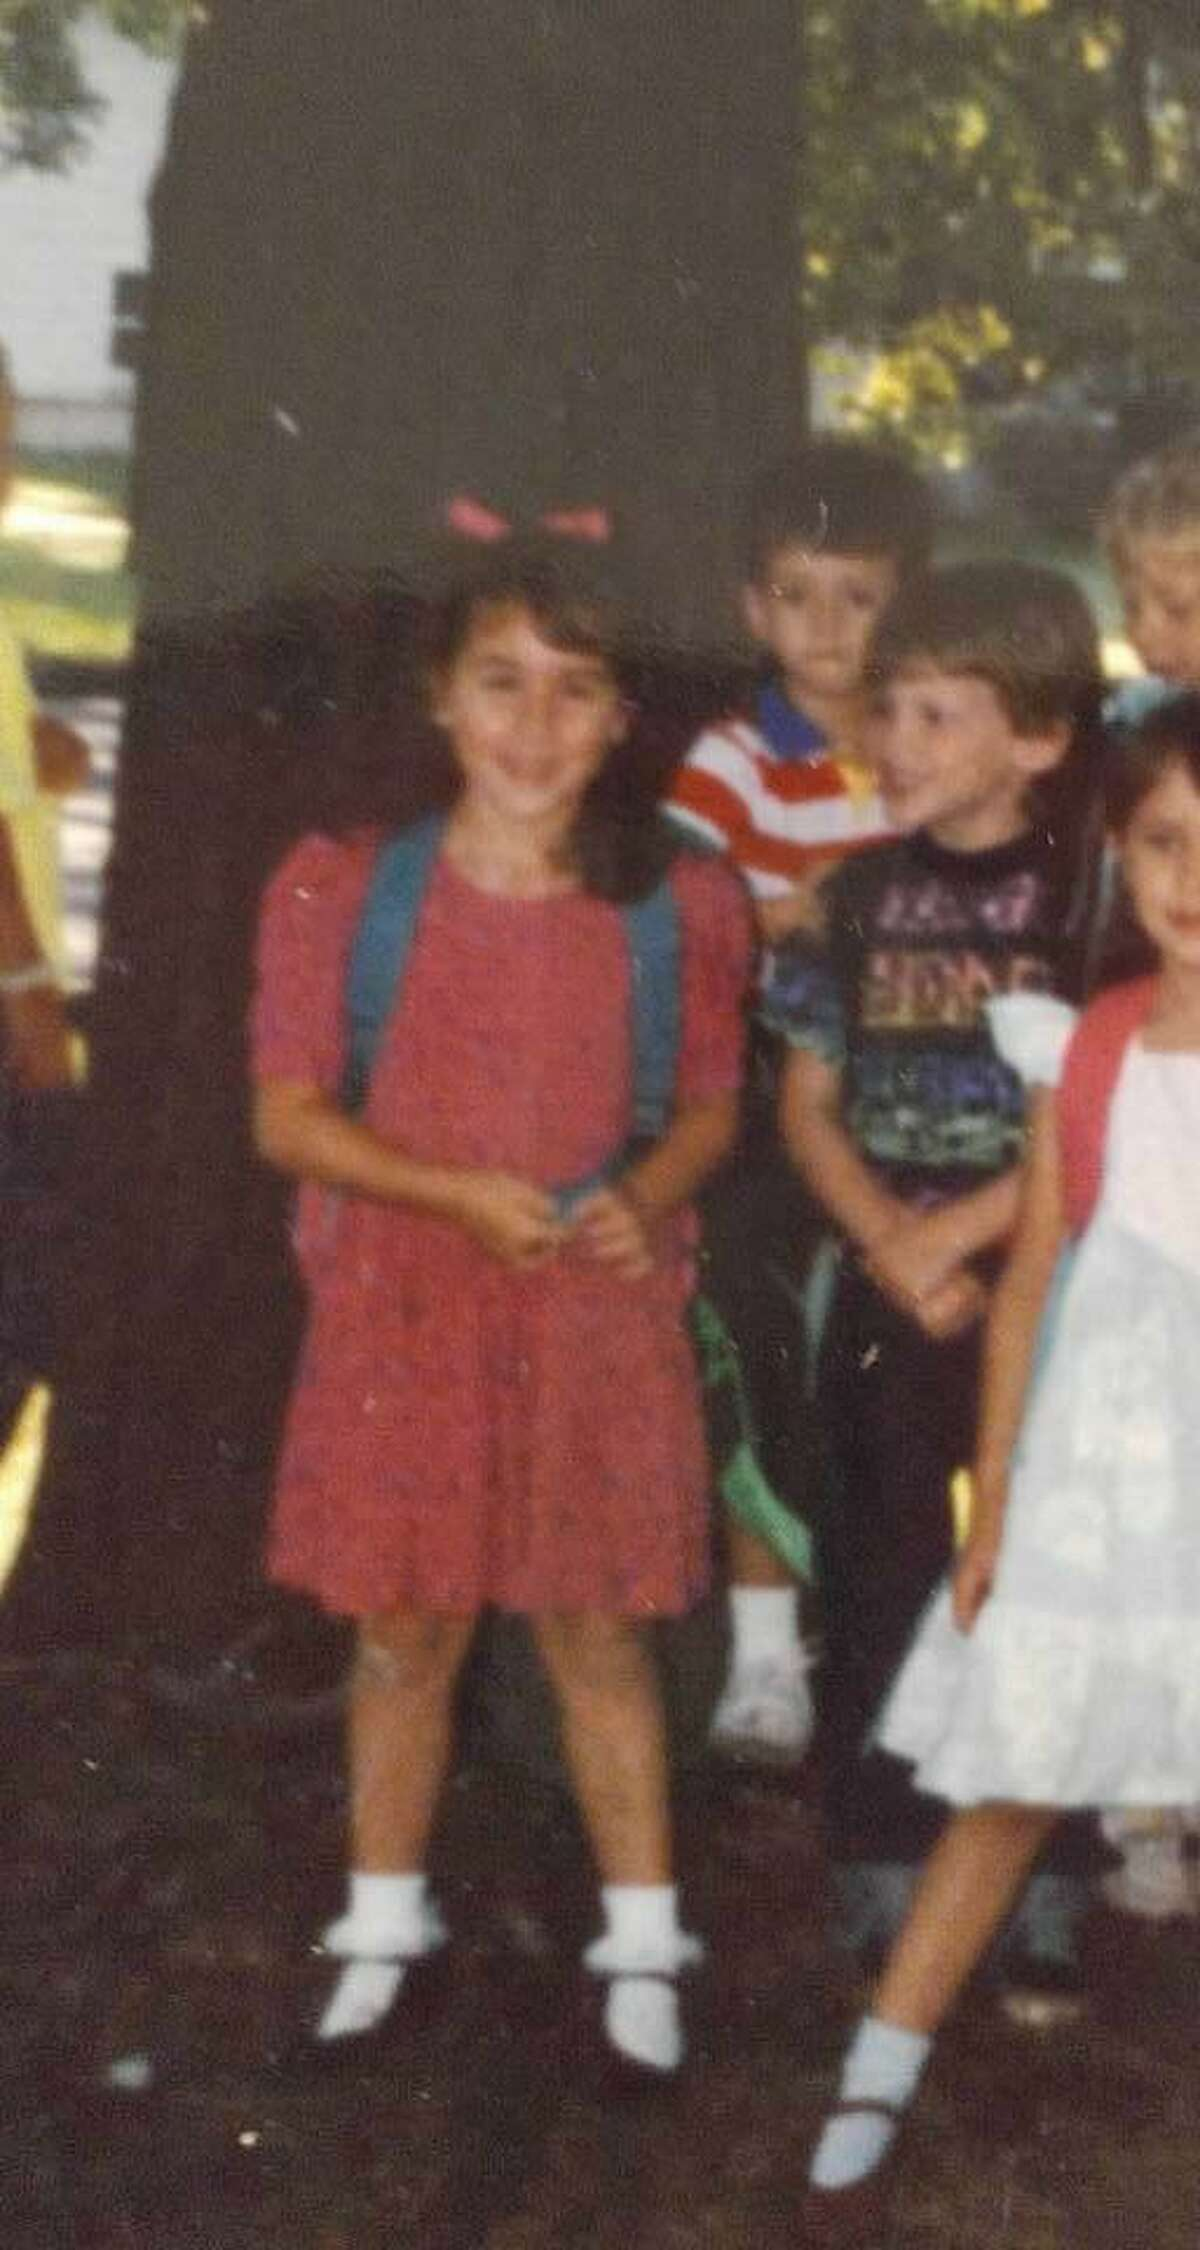 Broadway's Marissa Follo Perry and her fiancé, Chris Jones, are seen here on their first day of kindergarten. Jones, staring at her, says he was smitten from the moment they met.